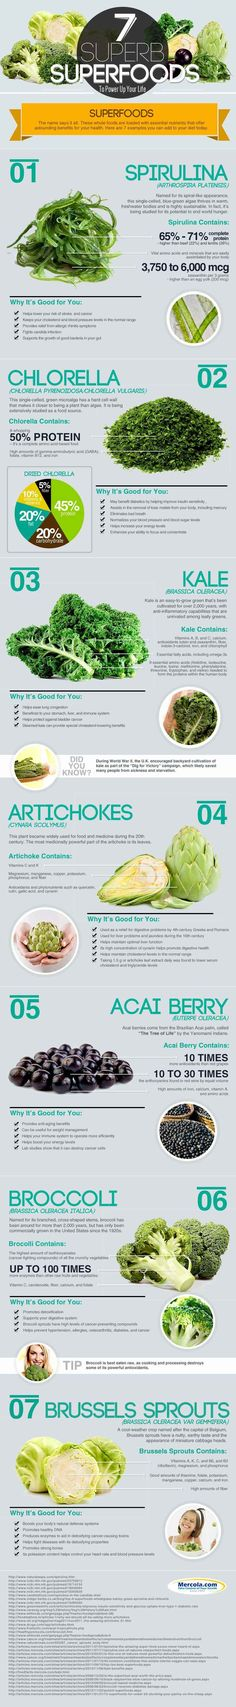 7 Superfoods